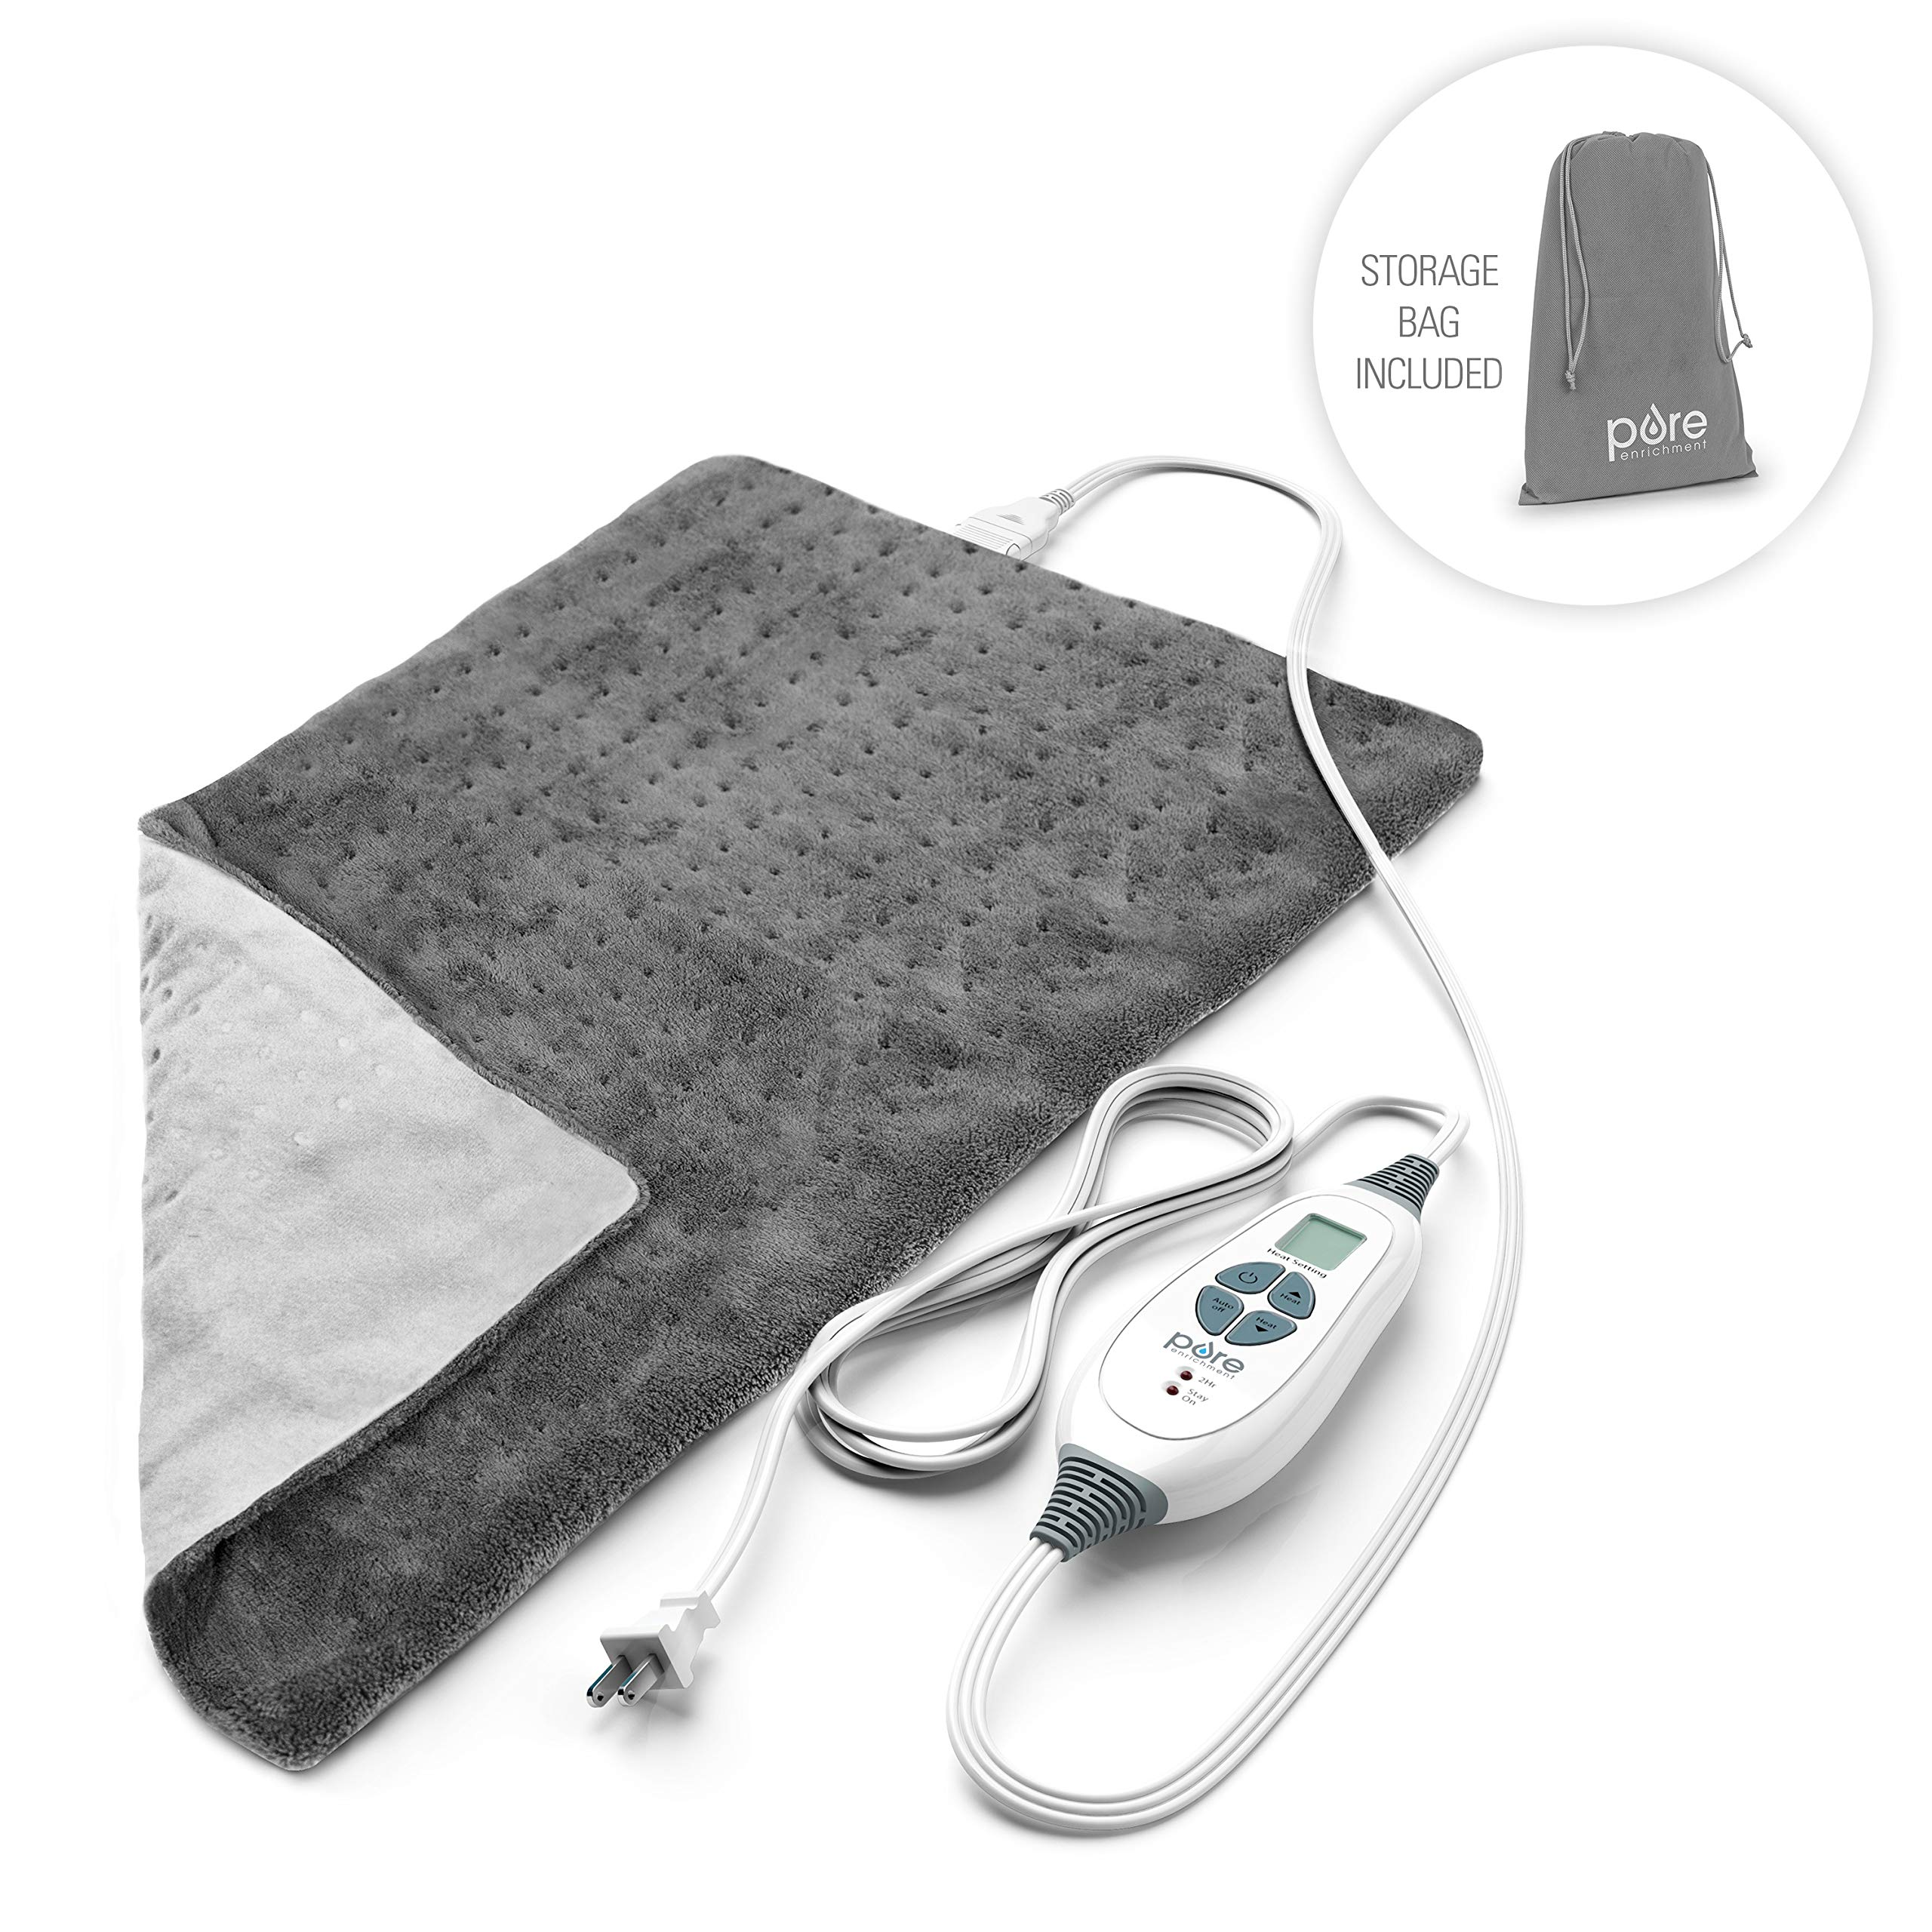 Pure Enrichment PureRelief XL King Size Heating Pad (Charcoal Gray) - Fast-Heating Machine-Washable Pad - 6 Temperature Settings, Moist Heat Therapy Option, Auto Shut-Off and Storage Bag - 12'' x 24'' by Pure Enrichment